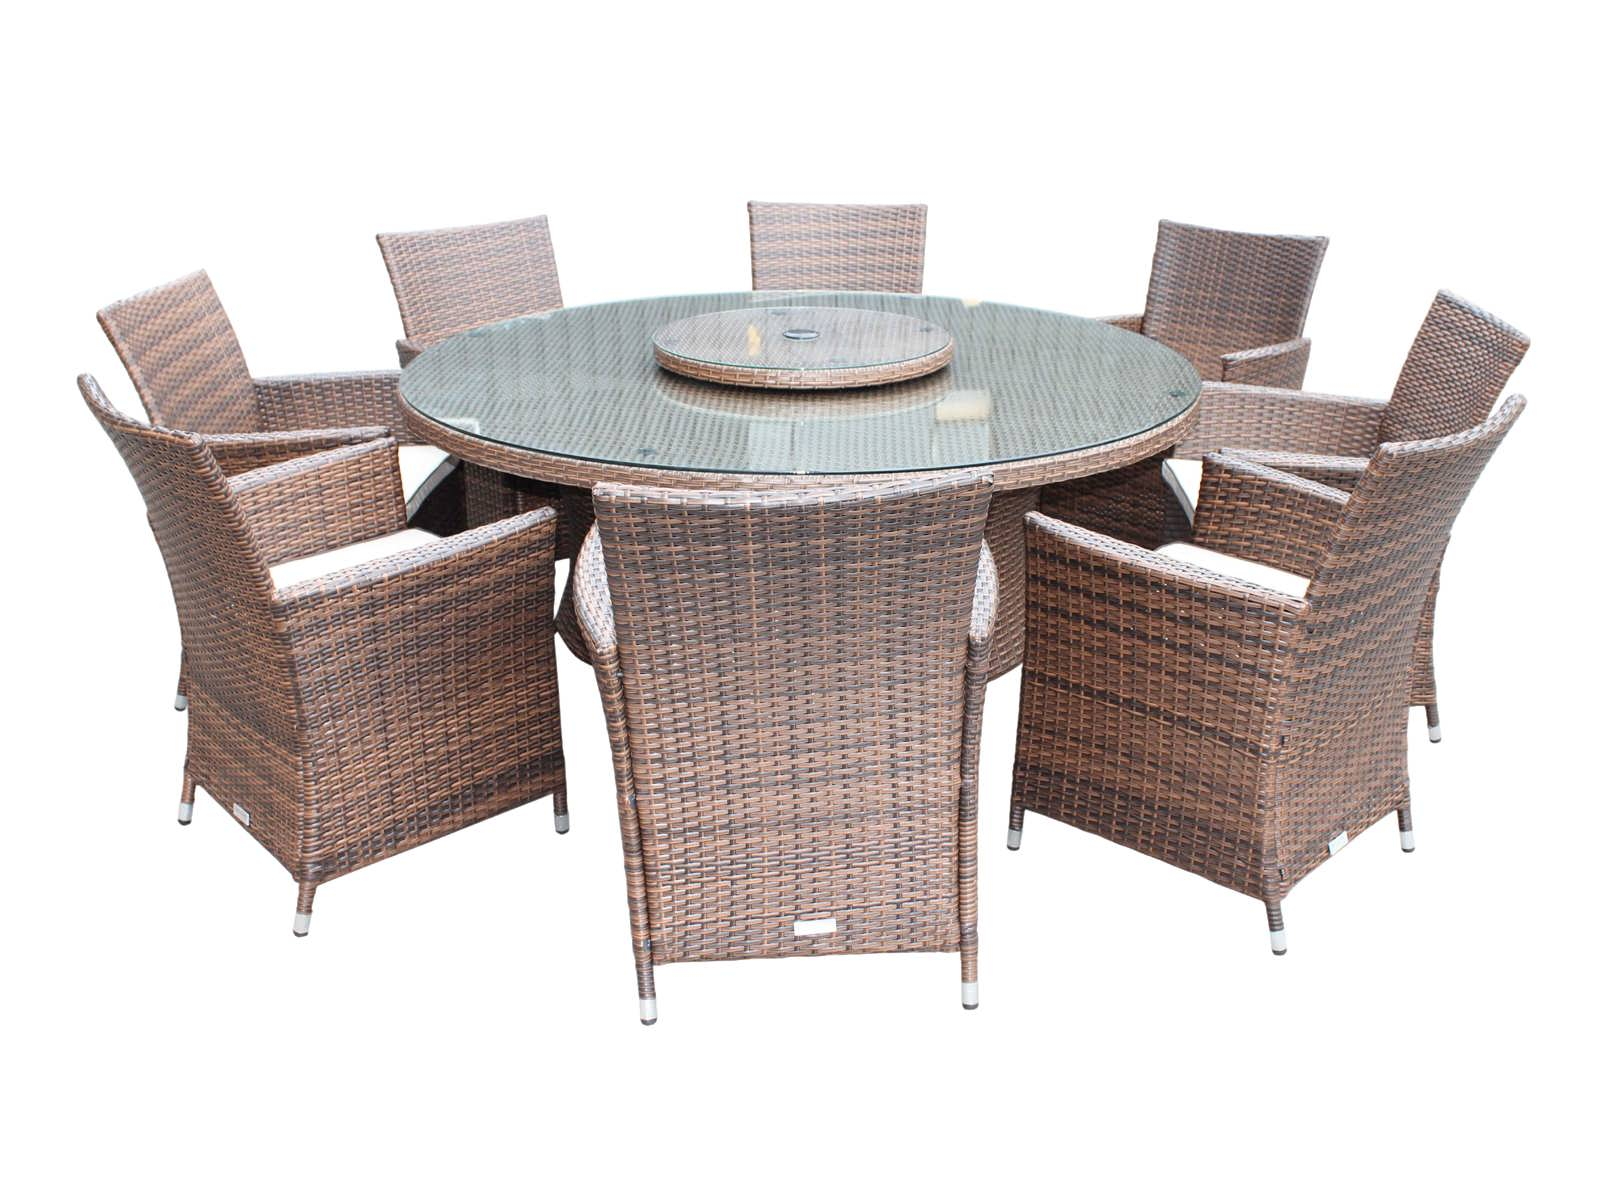 Cambridge 8 Chairs And Large Round Table Set In Chocolate And Cream